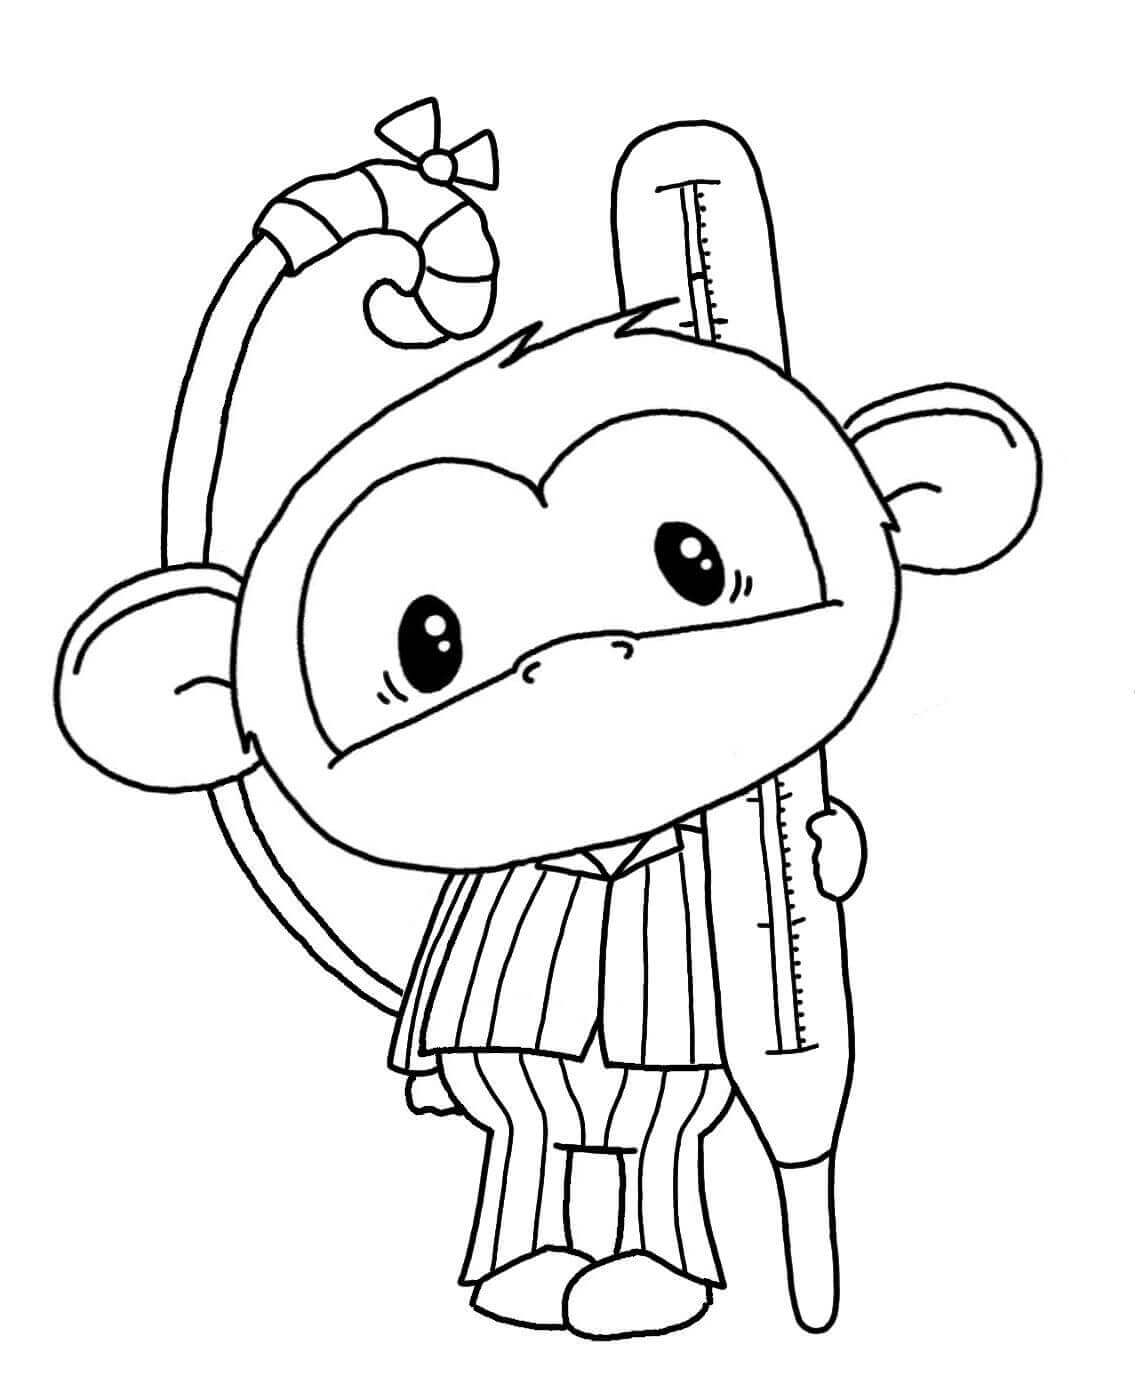 get well soon printable coloring cards community helpers and people coloring pages momjunction cards soon get coloring printable well